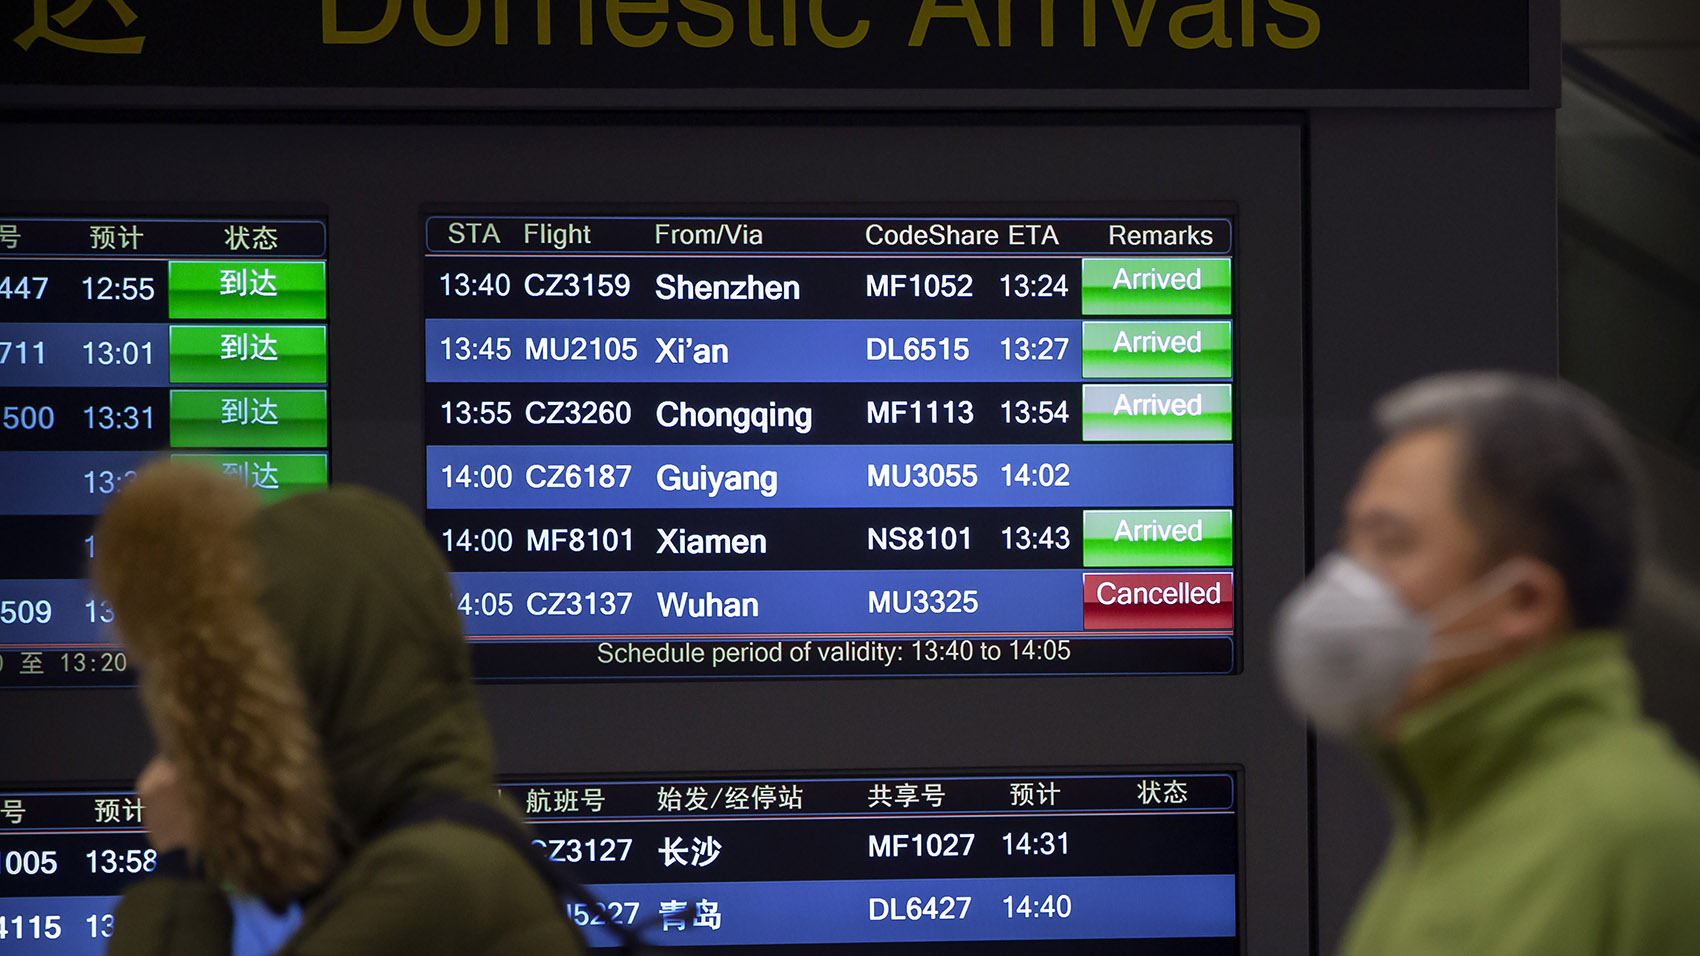 Beijing airport display shows flights from Wuhan are cancelled, Jan. 23, 2020. (AP)